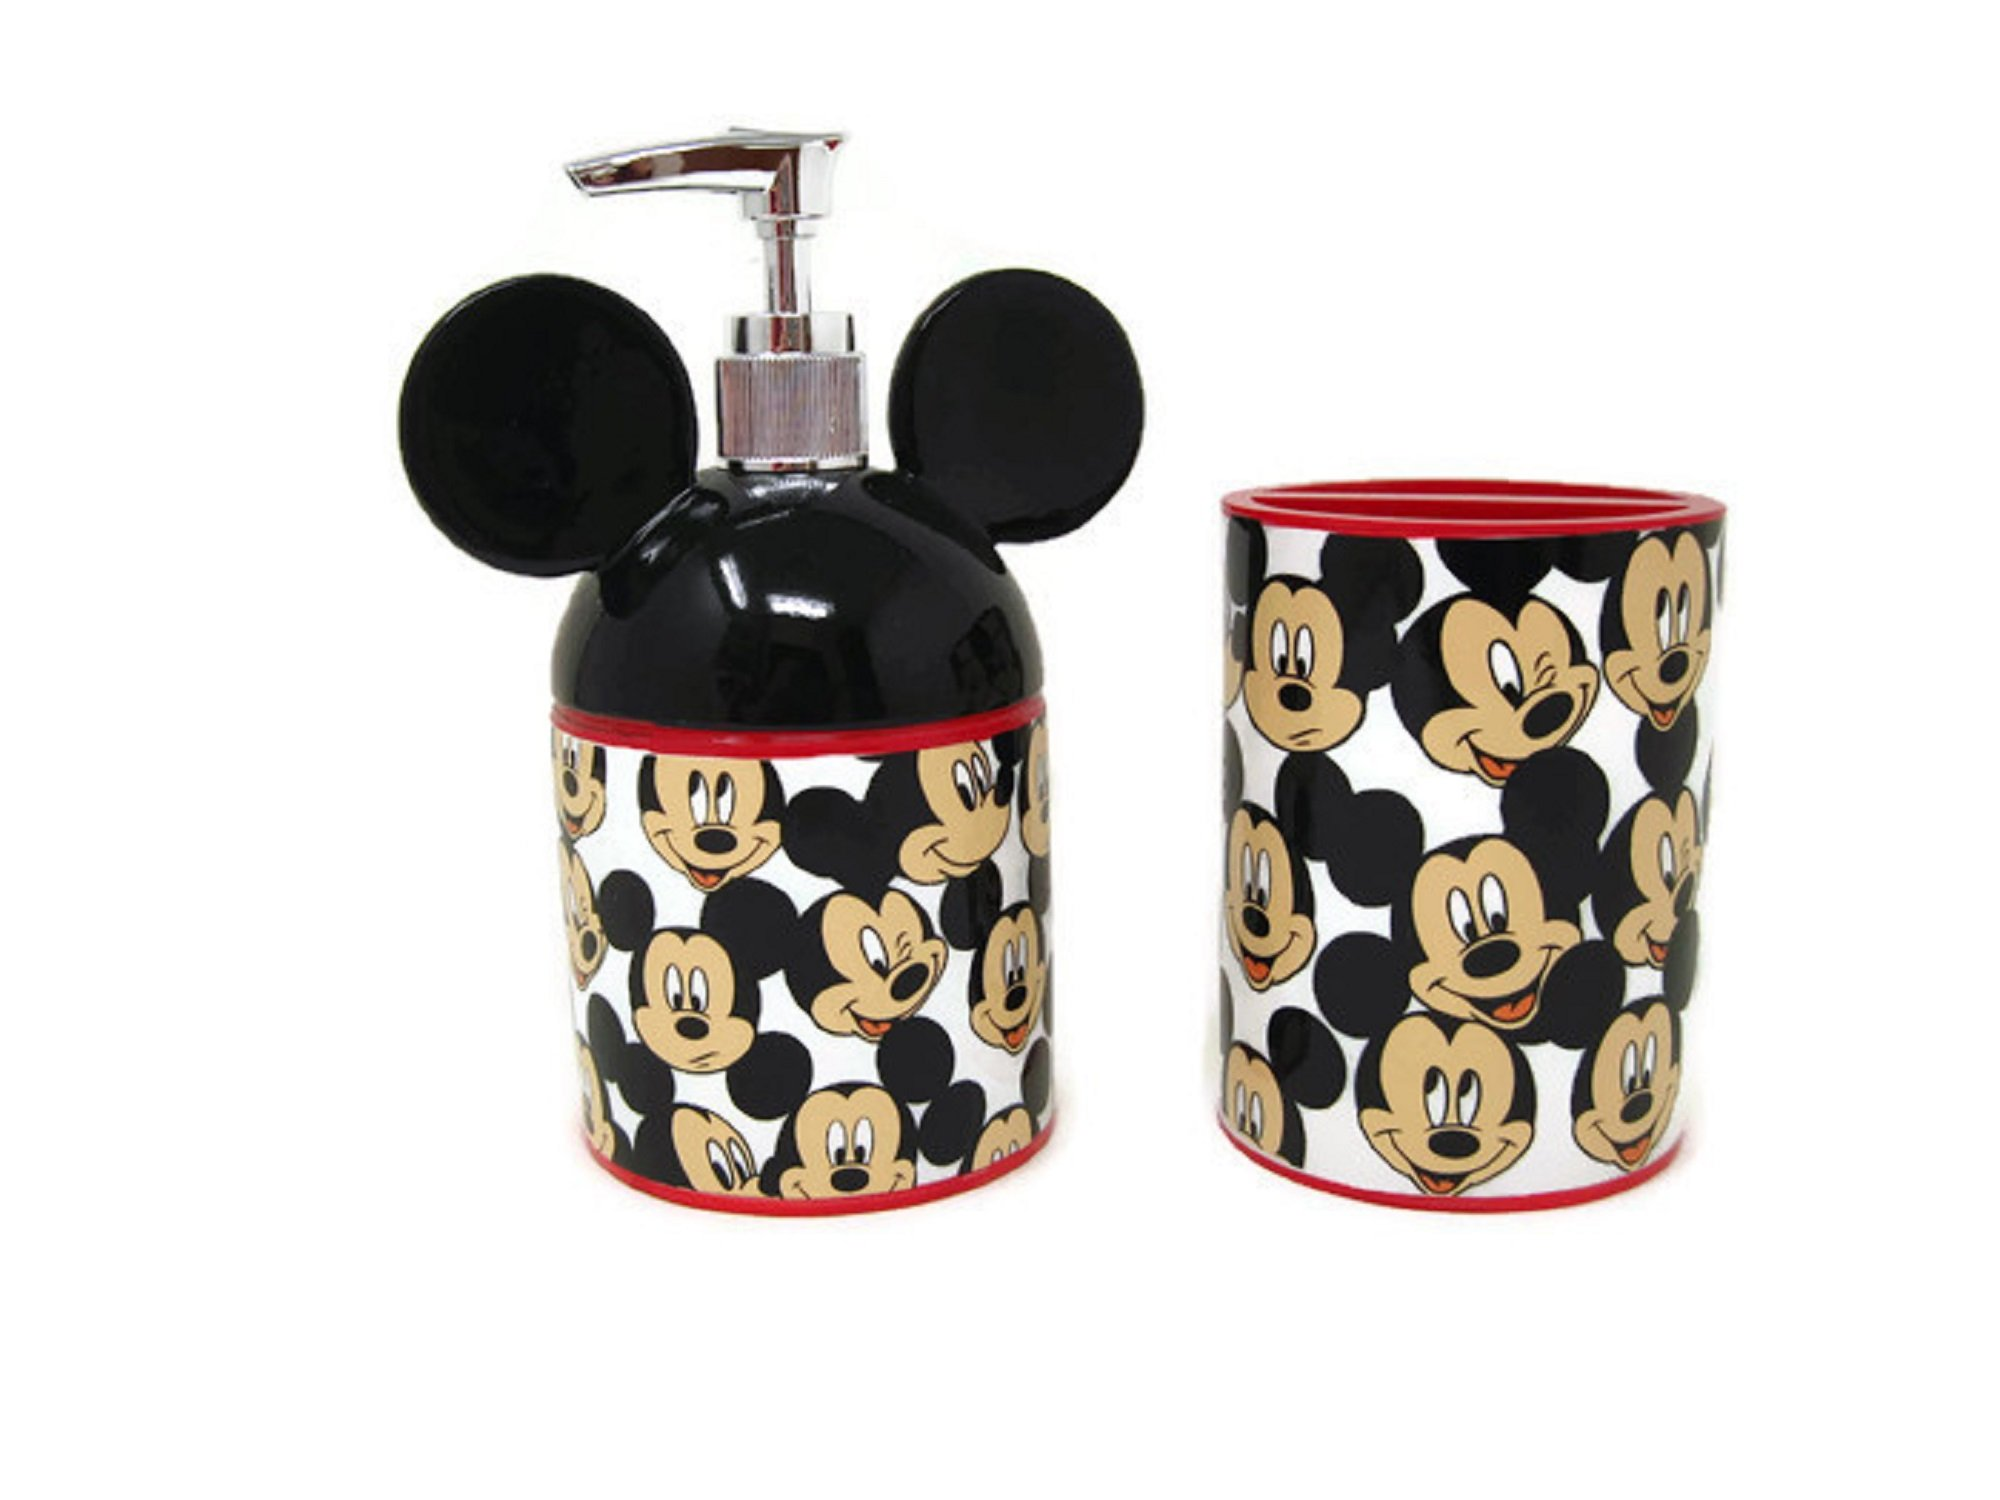 Mickey Mouse Soap/Lotion Dispenser and Toothbrush Holder Bundle/Set